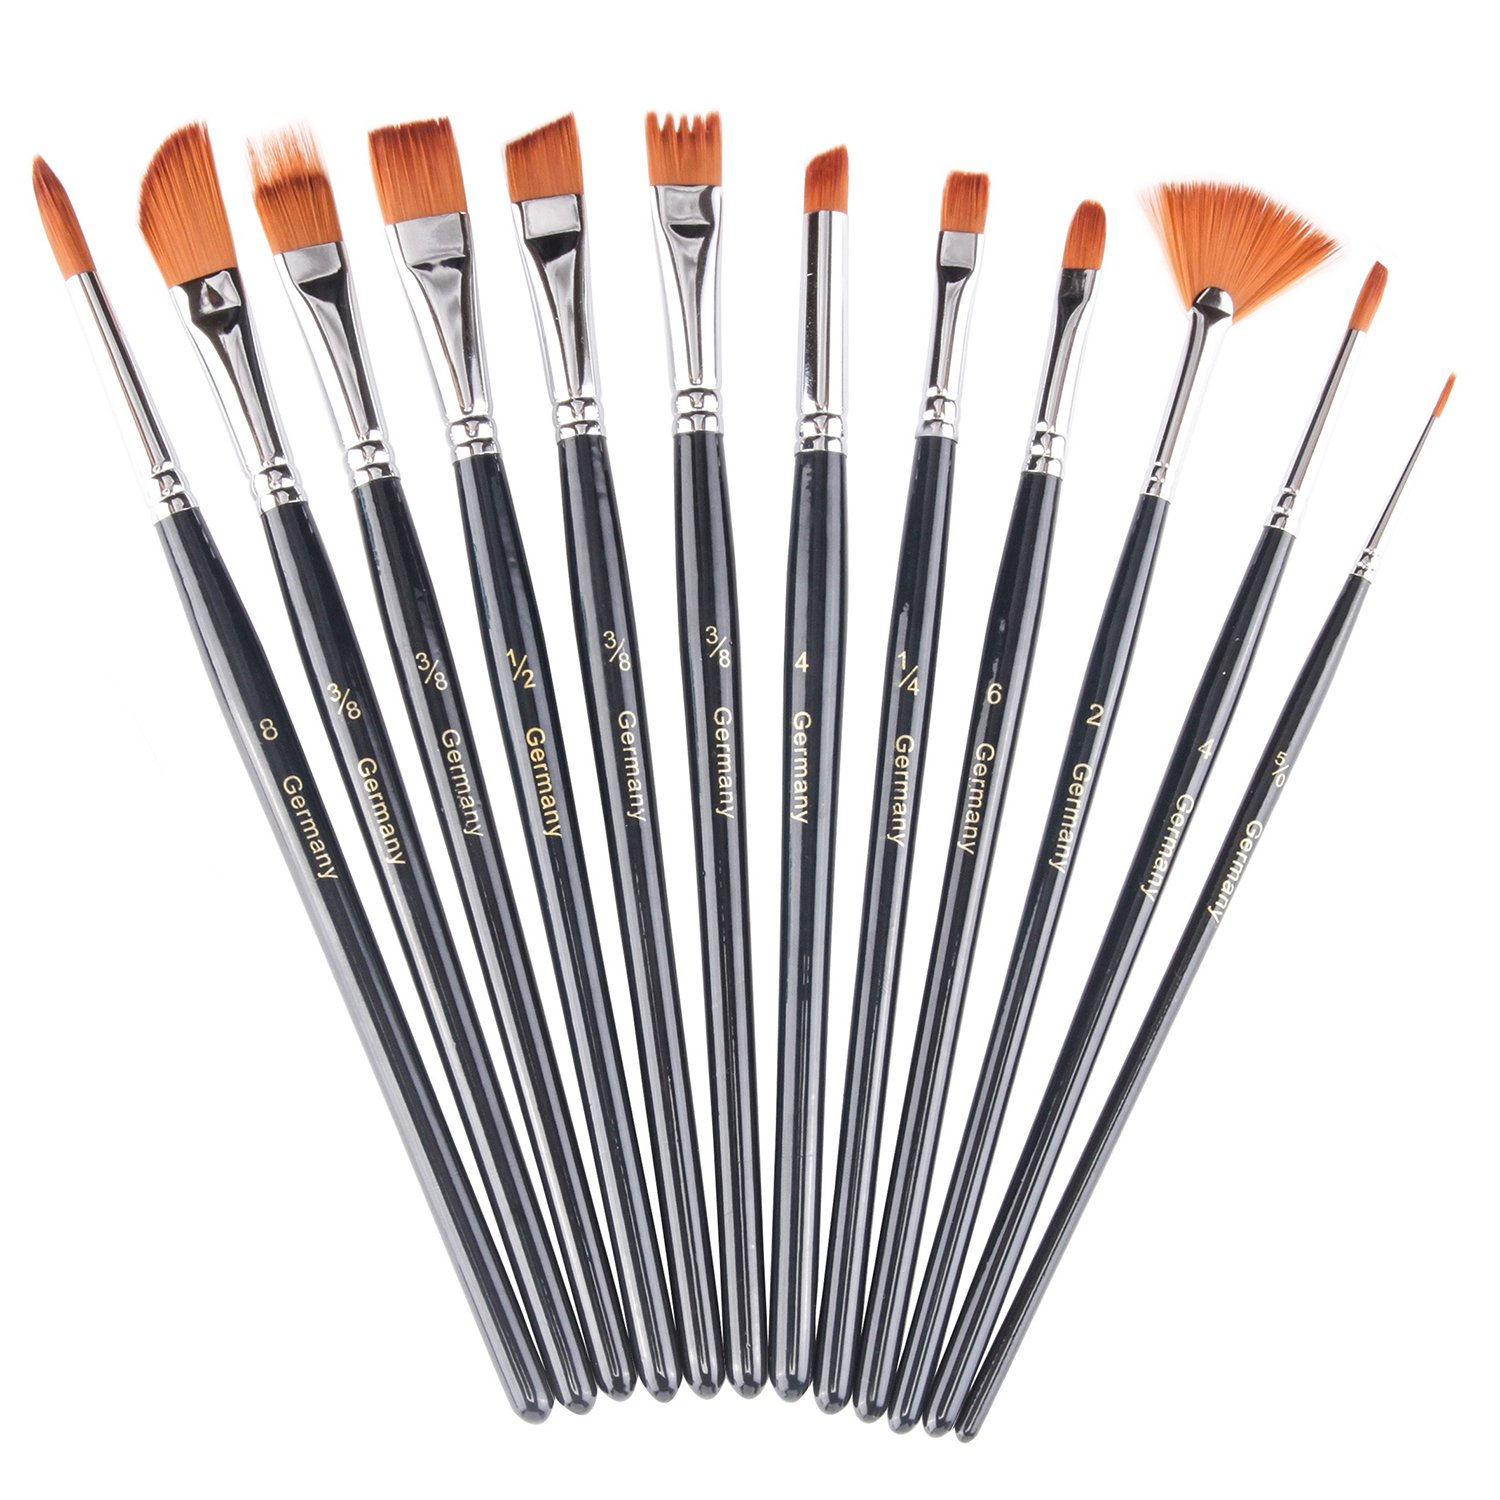 Paint Brushes Set 12 Pieces, heartybay Professional Fine Tip Paint Brush Set Round Pointed Tip Nylon Hair artist acrylic paints brush for Watercolor Oil Painting 4336963460